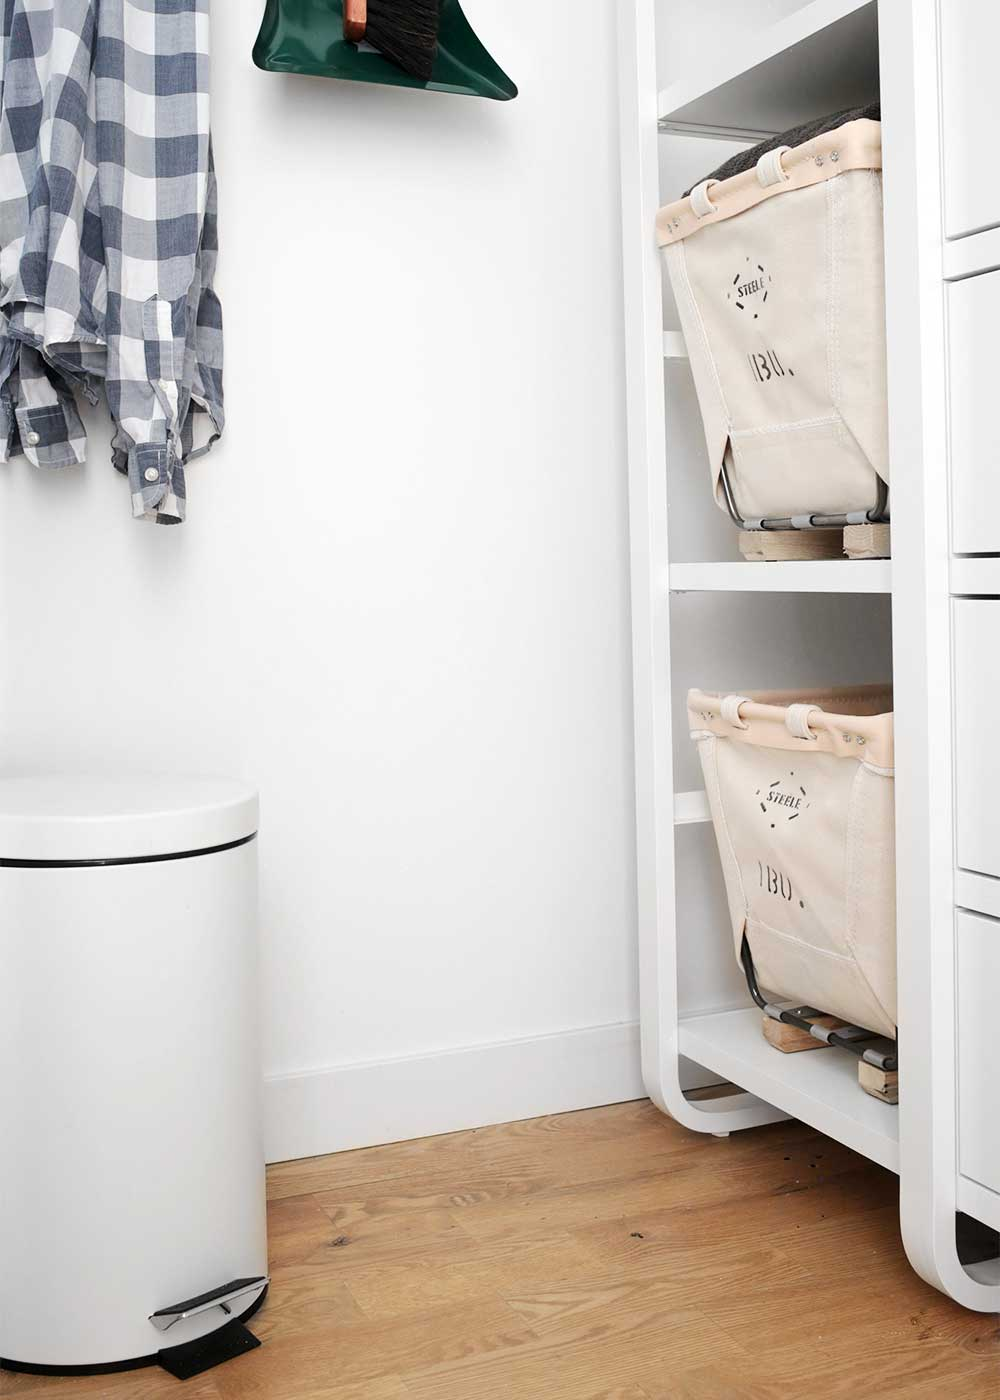 Steele Canvas Laundry Baskets from The Fauxmartha